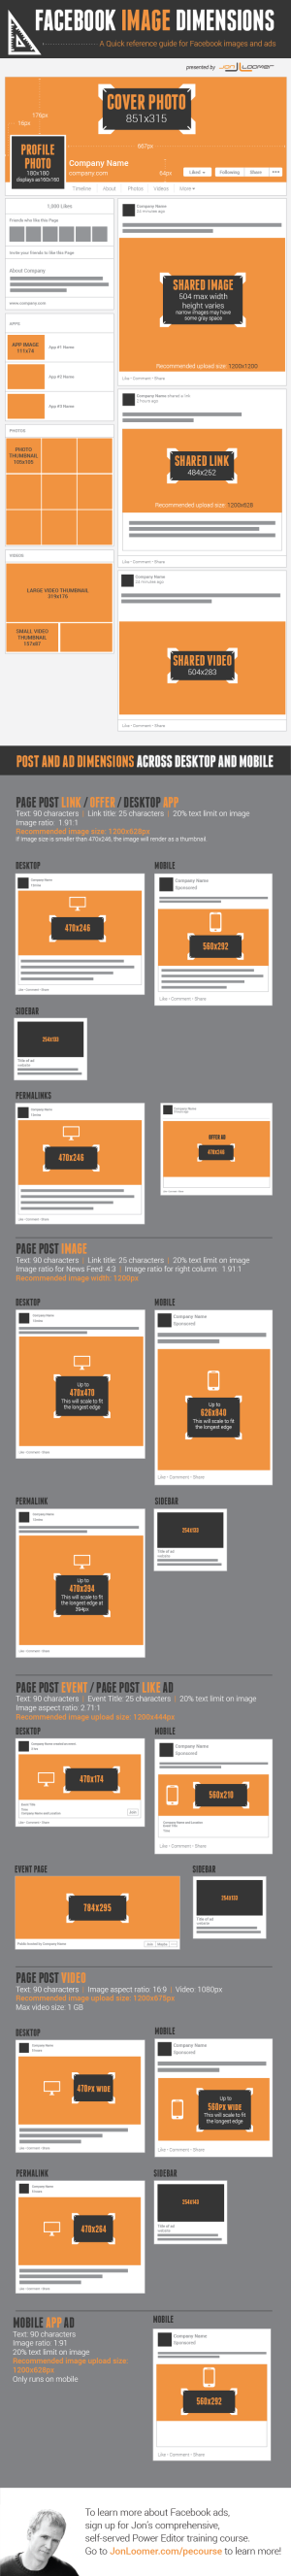 All Facebook Marketing Ads Image Dimensions 2014